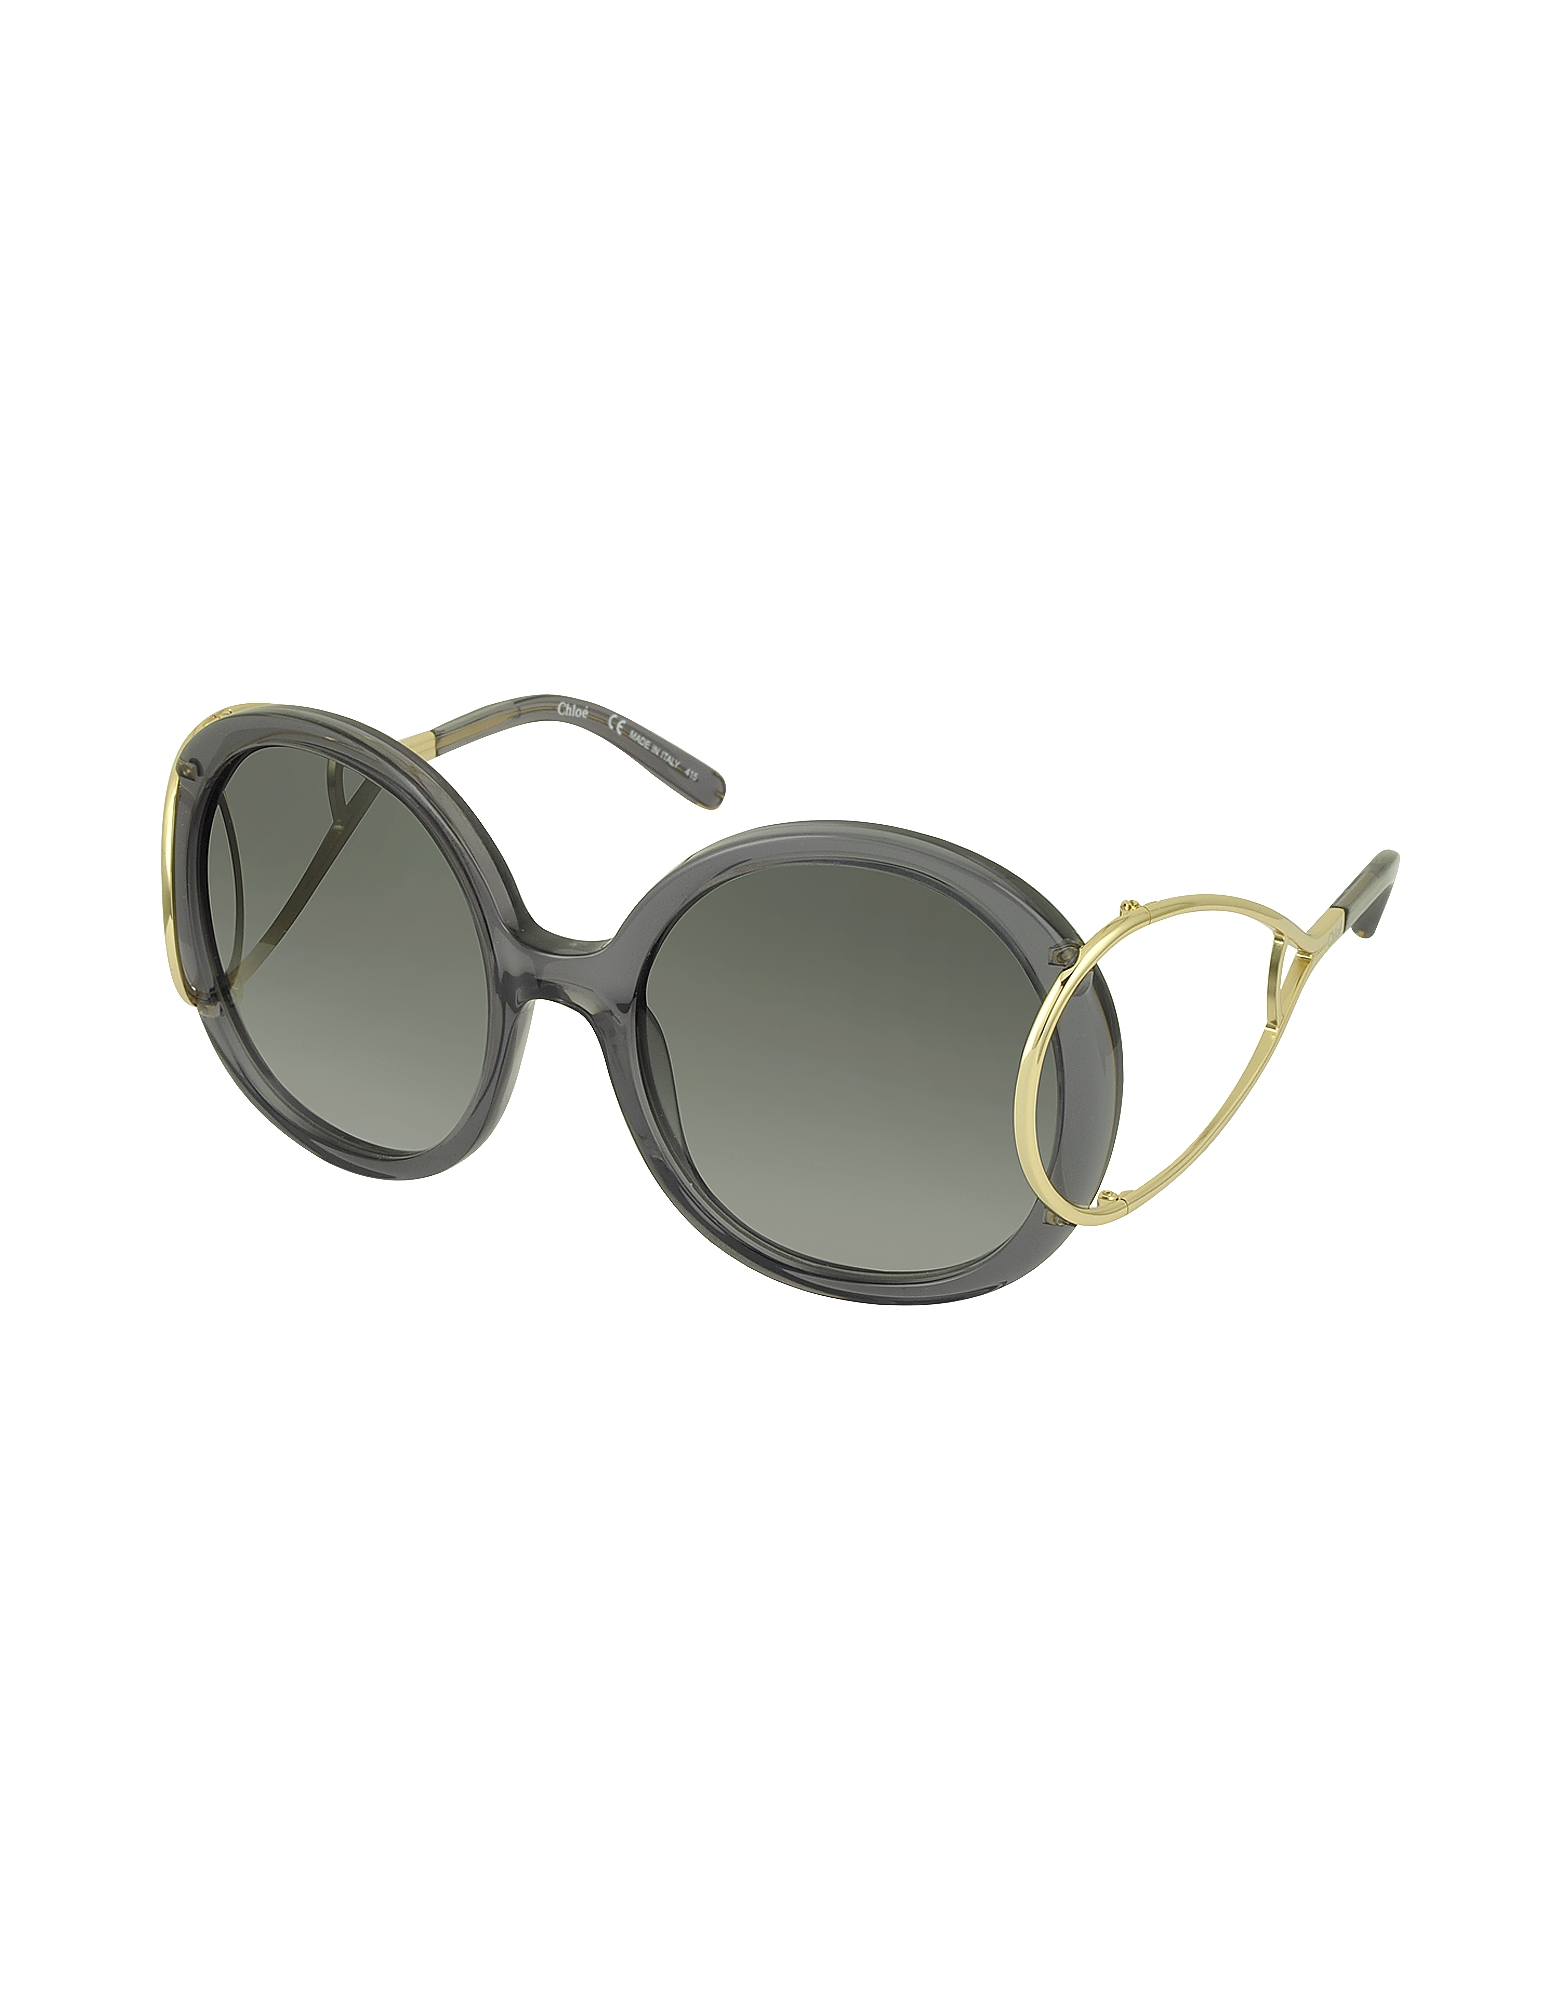 JACKSON CE 703S Large Round Acetate and Metal Women's Sunglasses от Forzieri.com INT